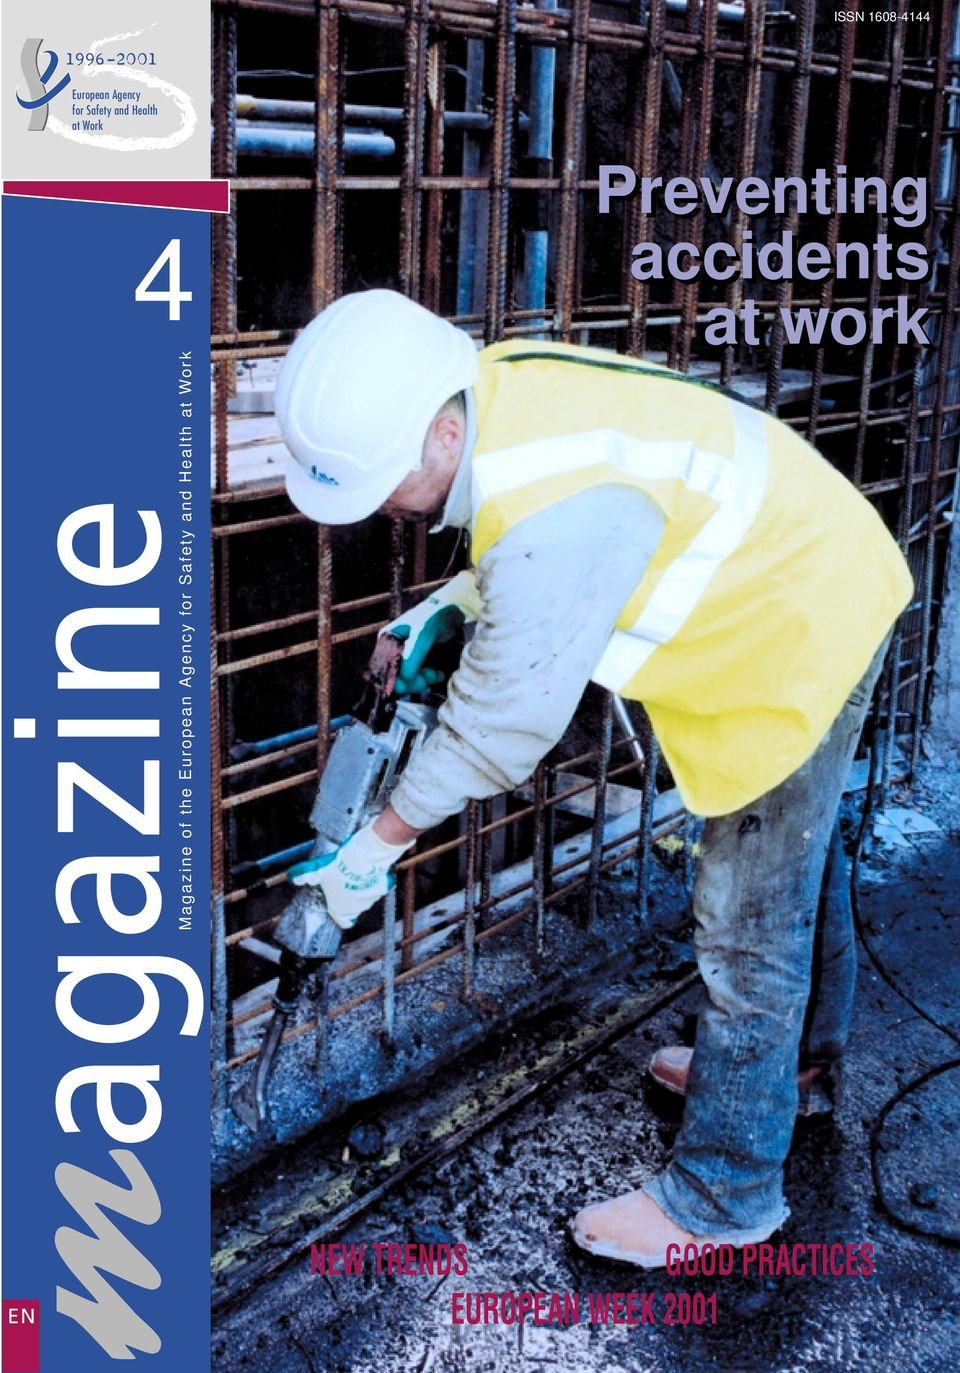 Magazine of the European Agency for Safety and